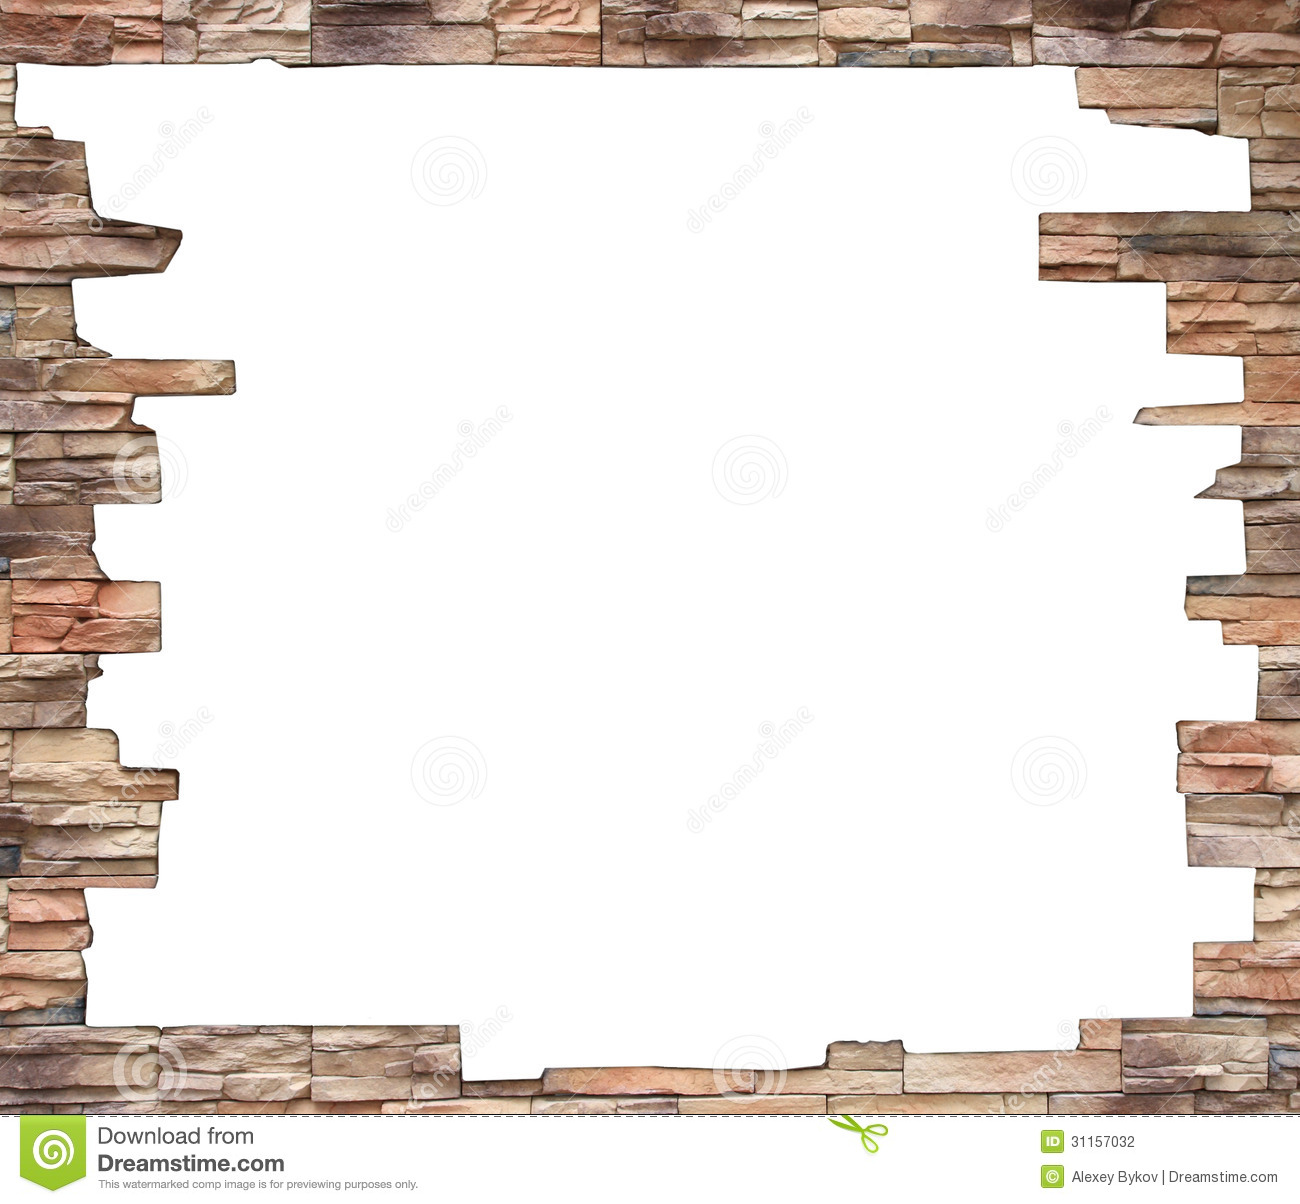 Old brick wall as a frame 01 stock photo image 18377500 - Filename Brick Wall Frame White Hole Old Grunge Interior 31157032 Jpg